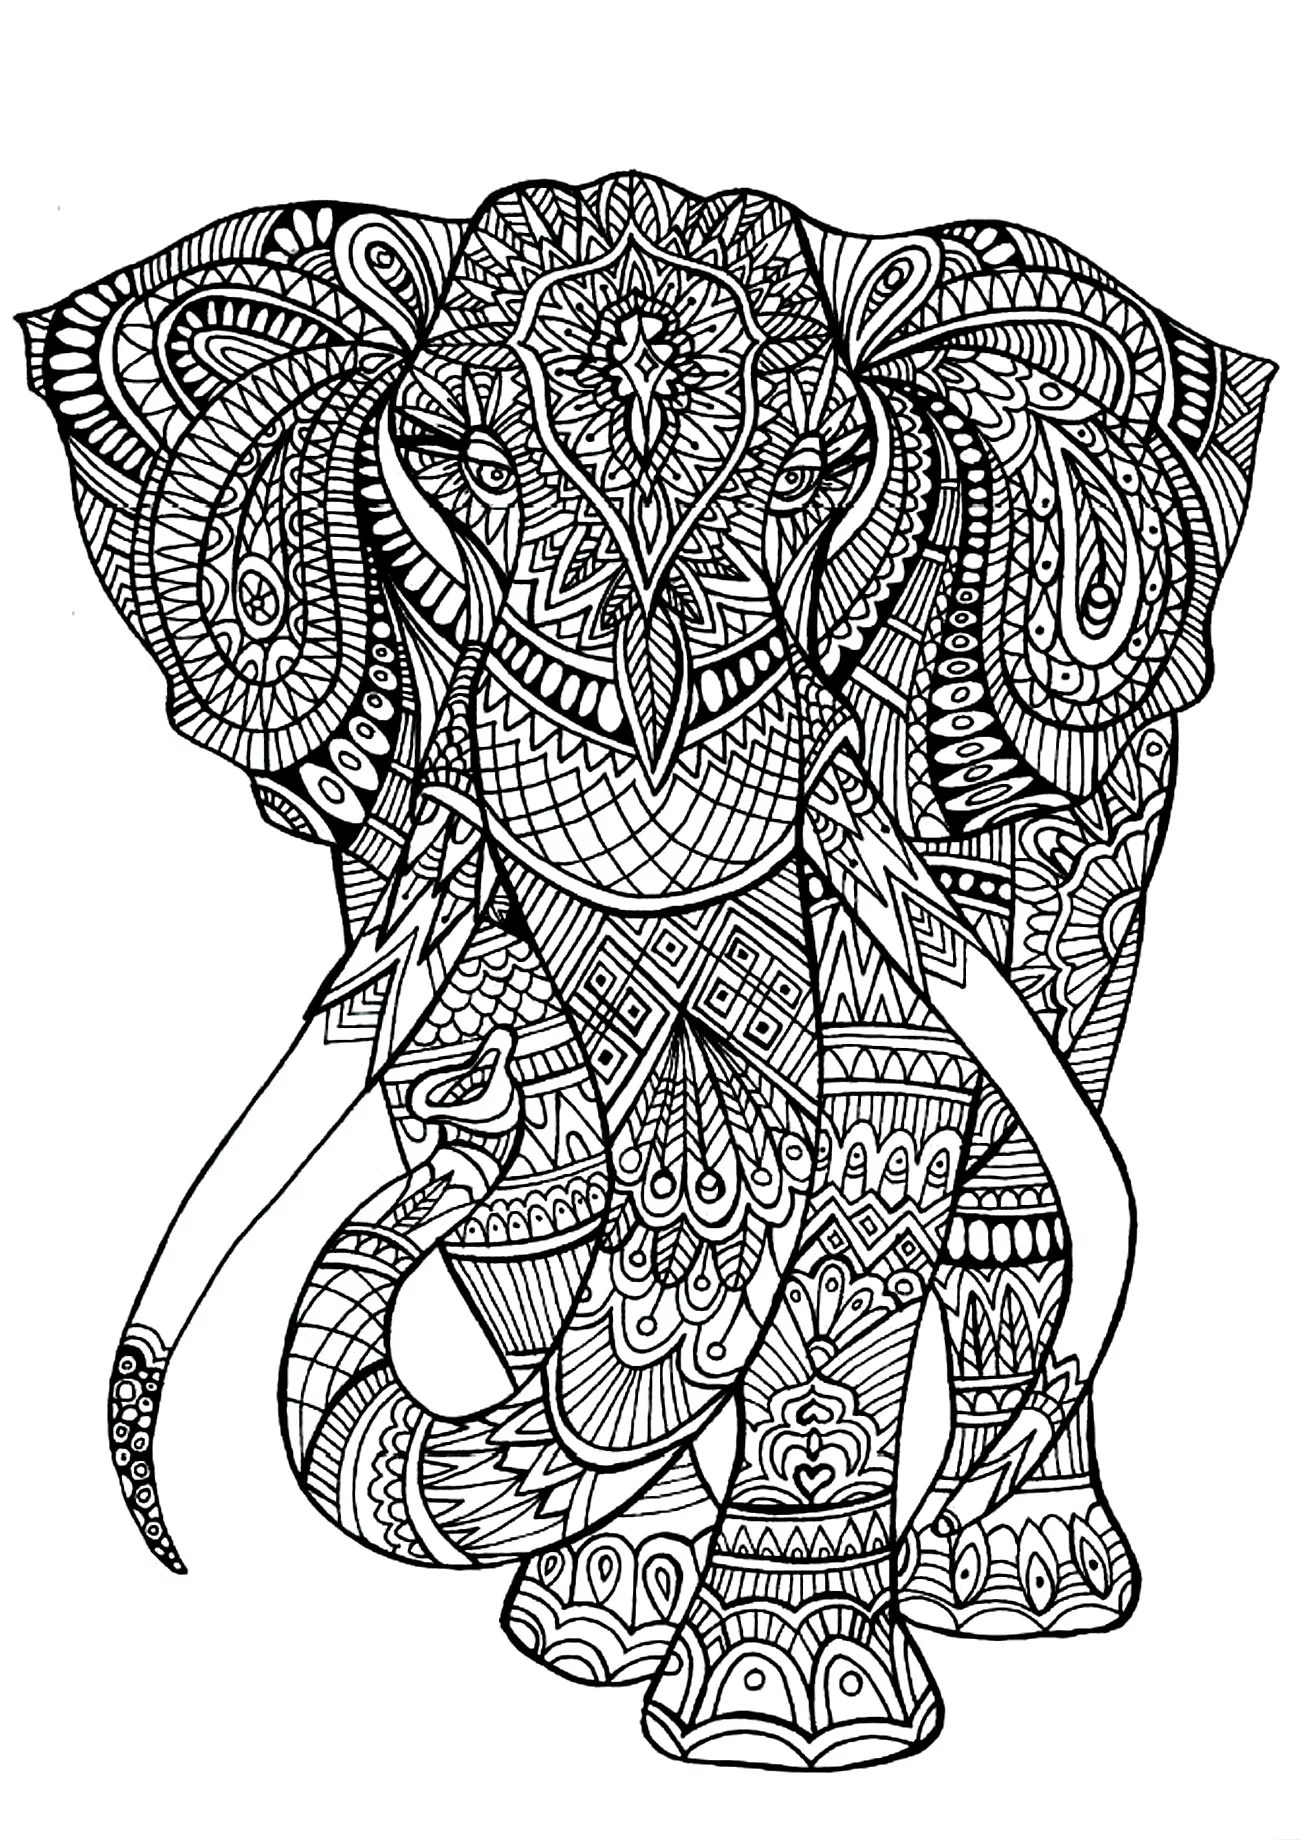 Get The Coloring Page Elephant 50 Printable Adult Coloring Pages That Will Help You De Stress Popsugar Smart Living Photo 5